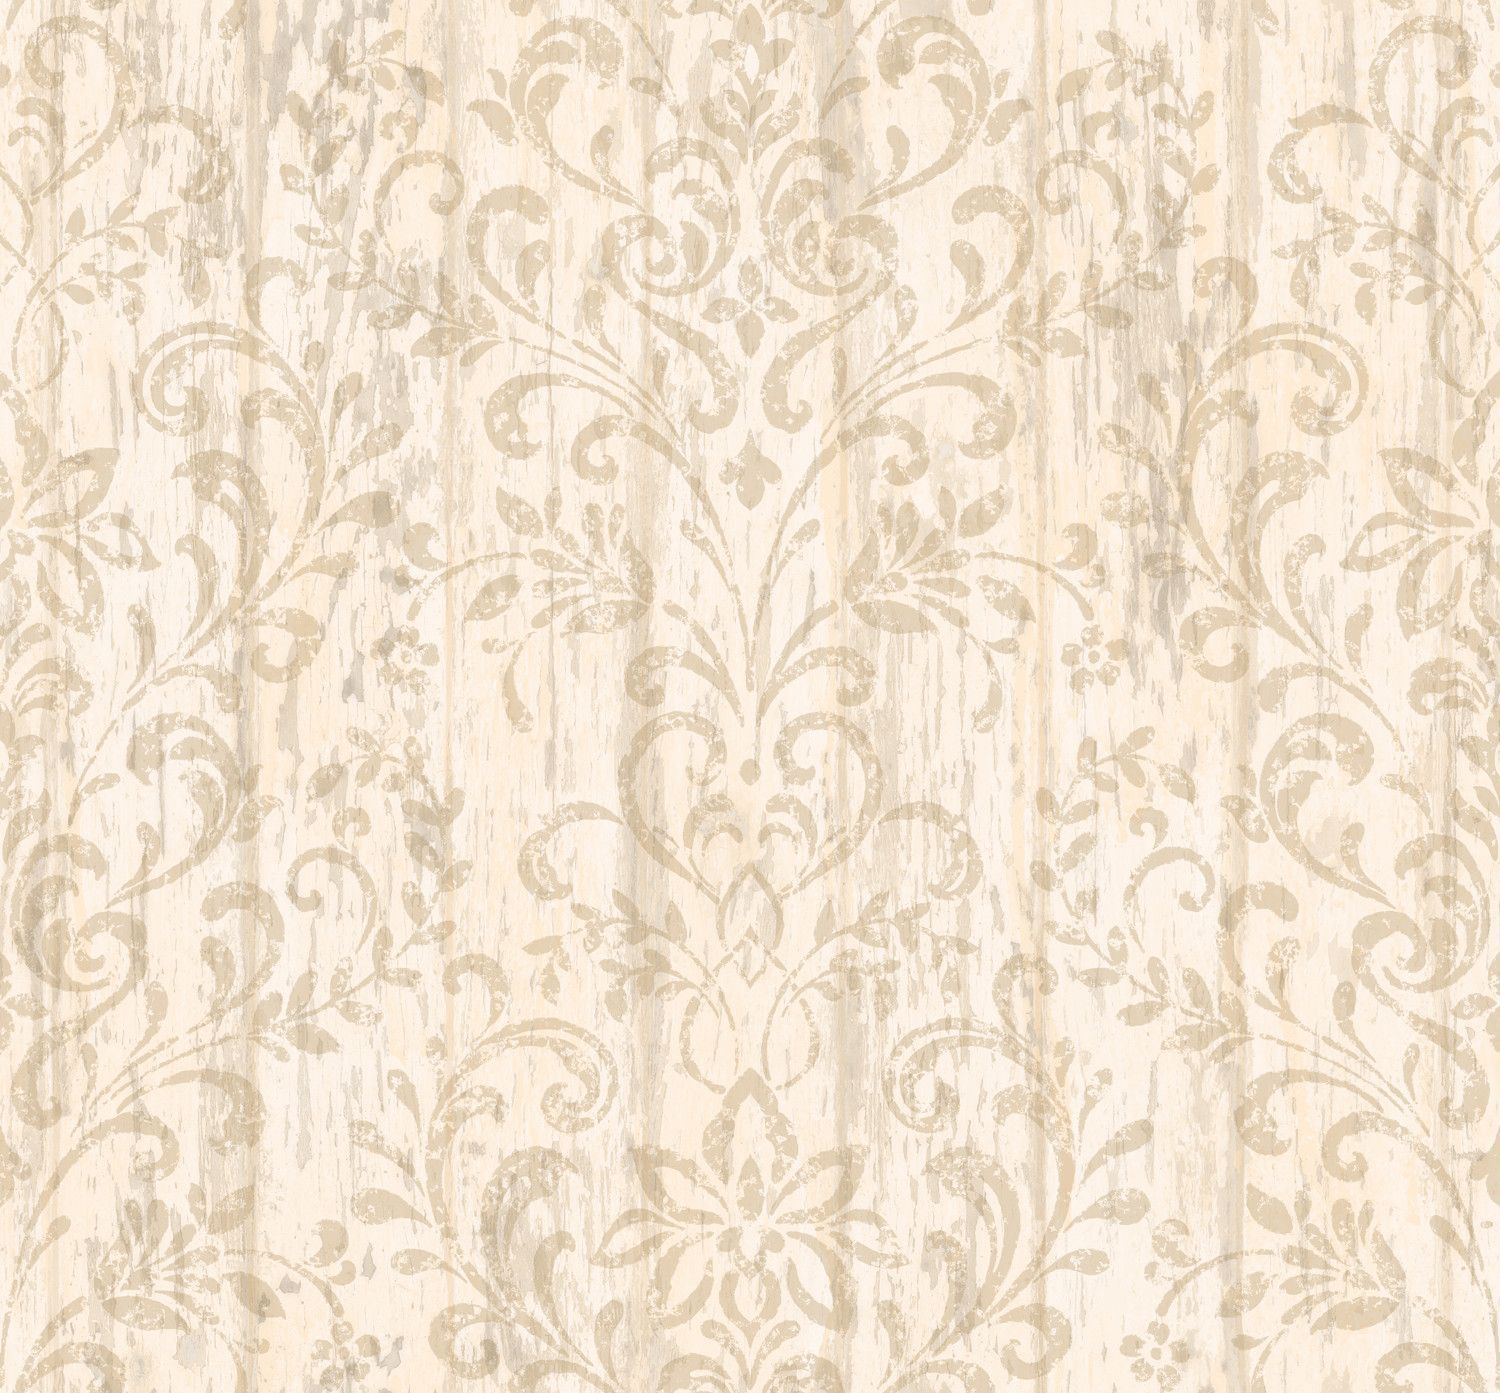 Pure Country Reba Faux Wood 33 X 205 Floral 3D